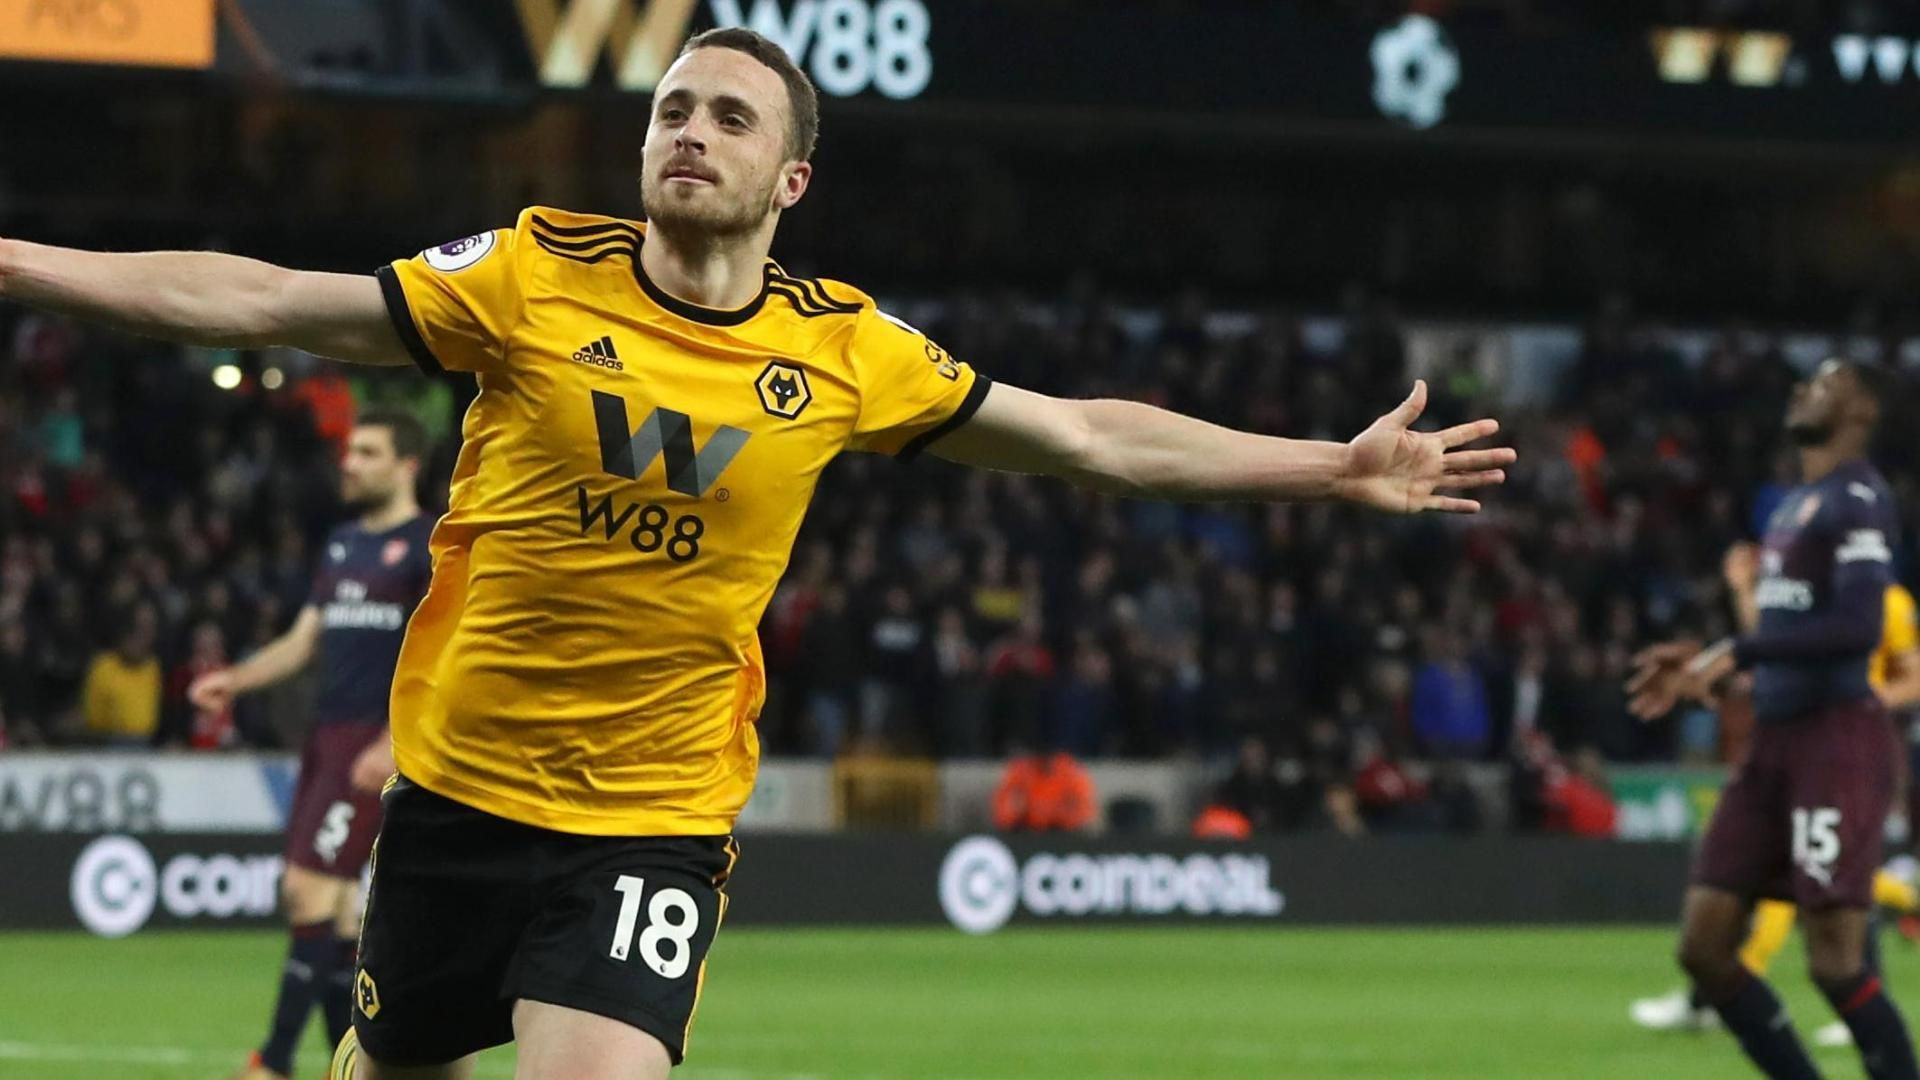 Jota stuns Arsenal with Wolves' 3rd goal